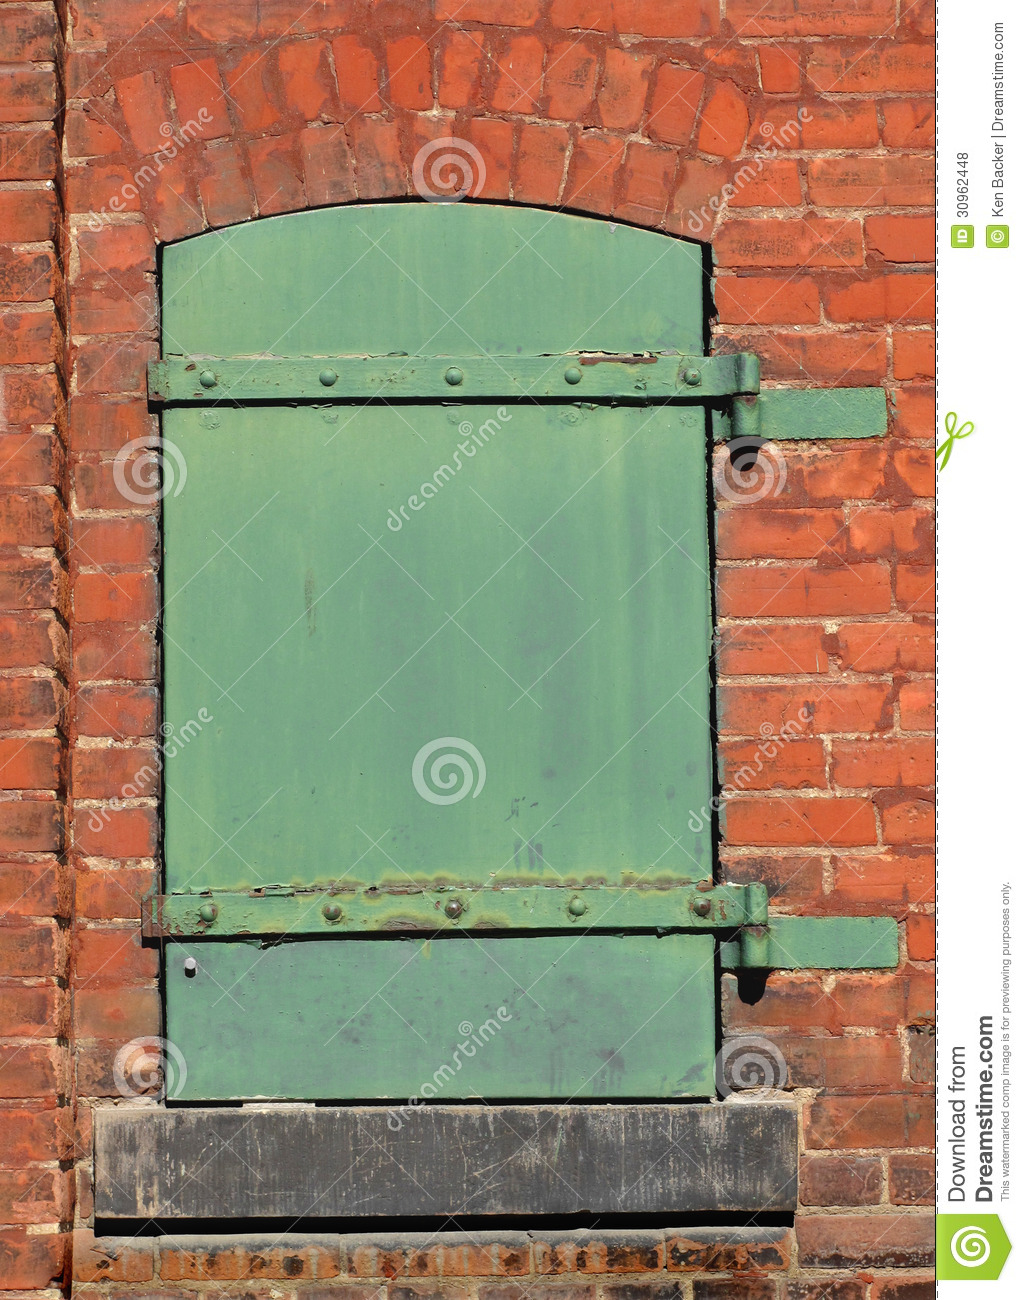 Green Metal Door In A Brick Wall Stock Photo Image Of